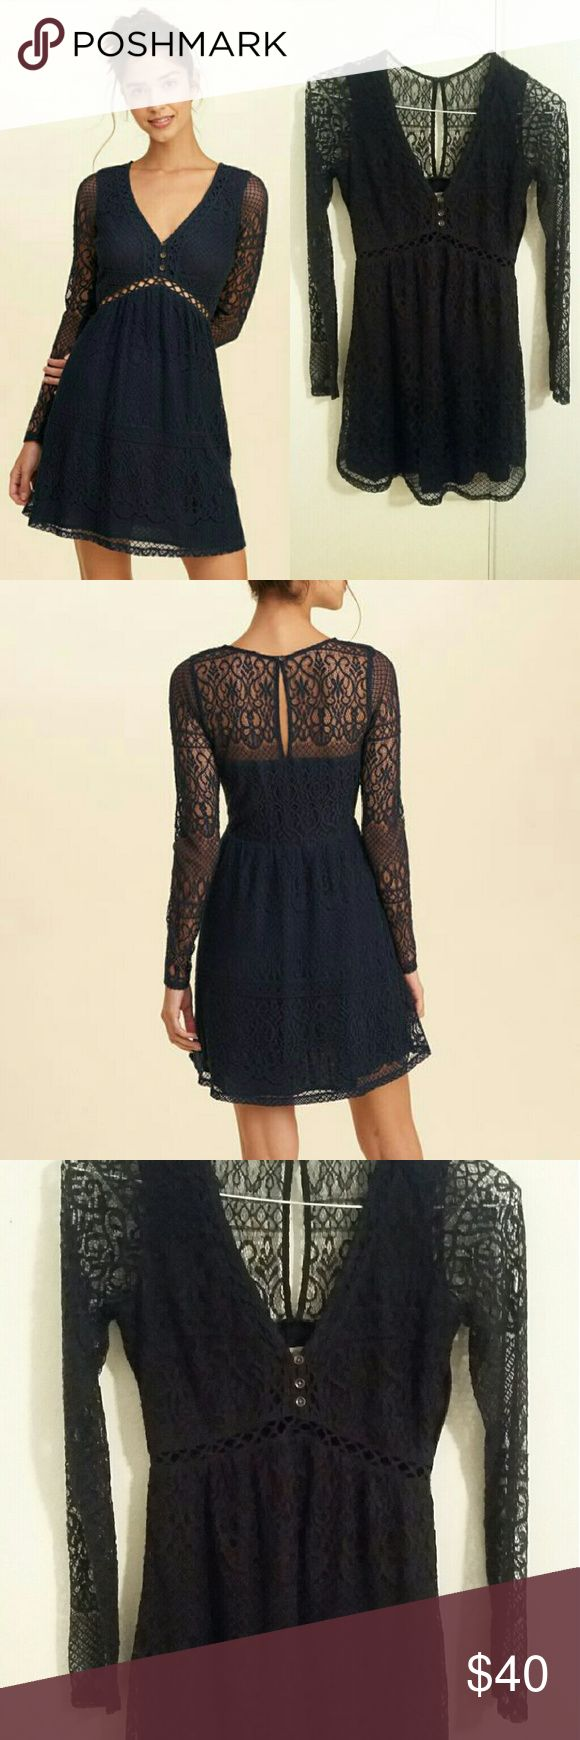 Long Sleeve V-Neck Lace Dress *FINAL/FIRM PRICE* * Please excuse my phone quality (using old phone currently), had to return my other one temporarily for repairs, so pictures aren't doing justice right now. :( - Navy blue color - Size 3 (juniors) - Delicate lace detailing - Side zipper - Gently used; worn out twice; good condition * Non-smoking home :) Hollister Dresses Long Sleeve